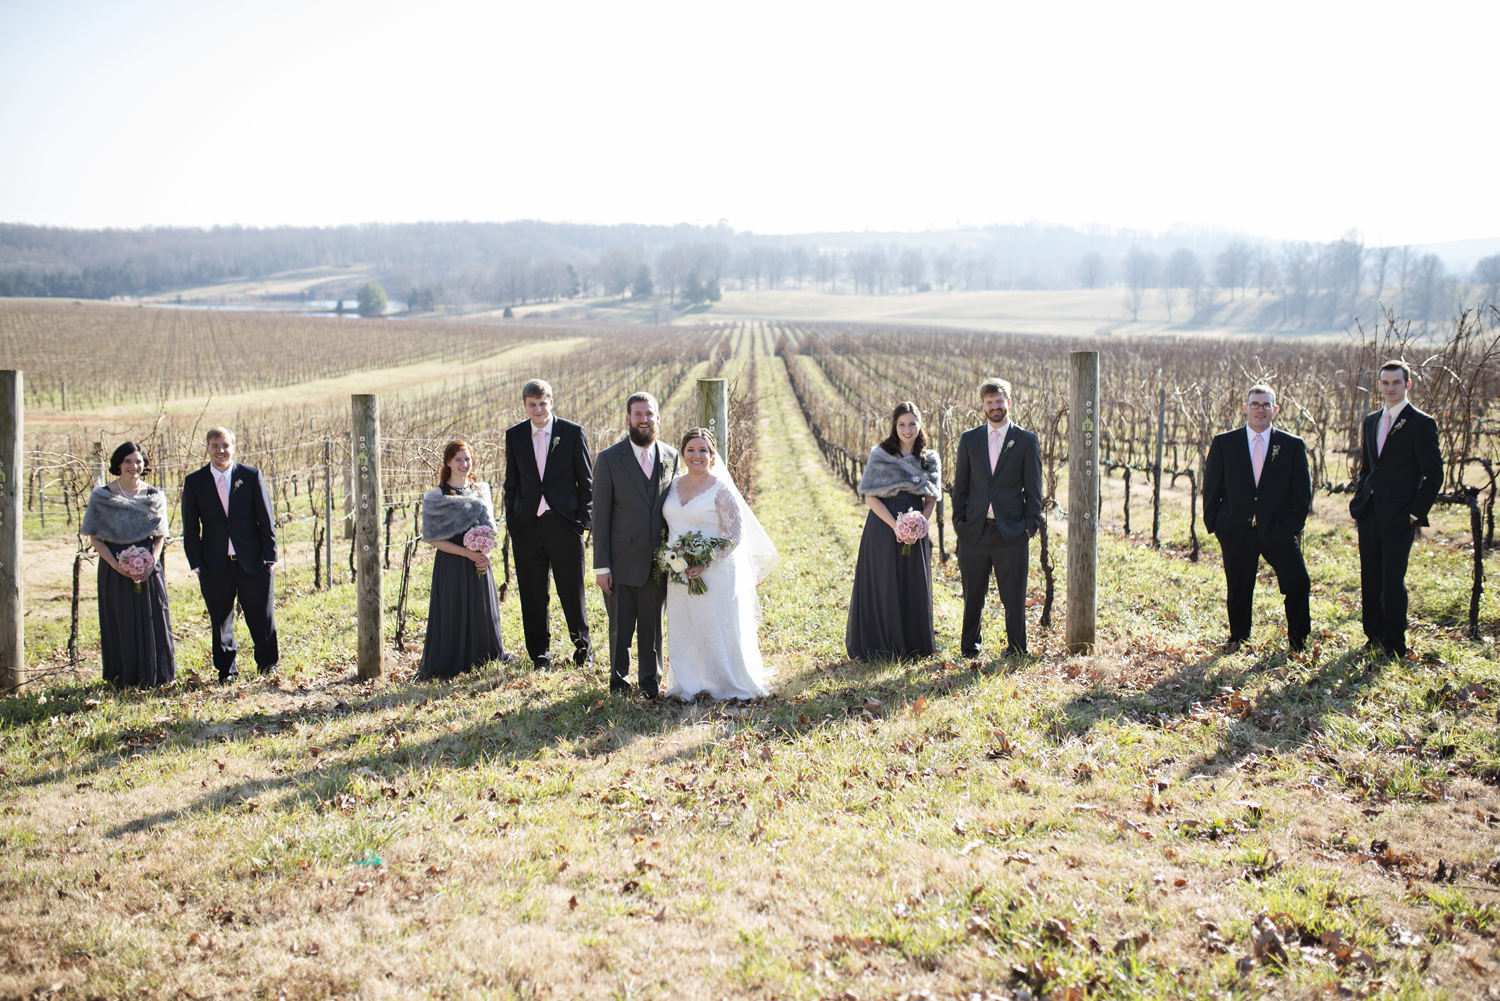 Bridal party portraits at a wine vineyard in Virginia